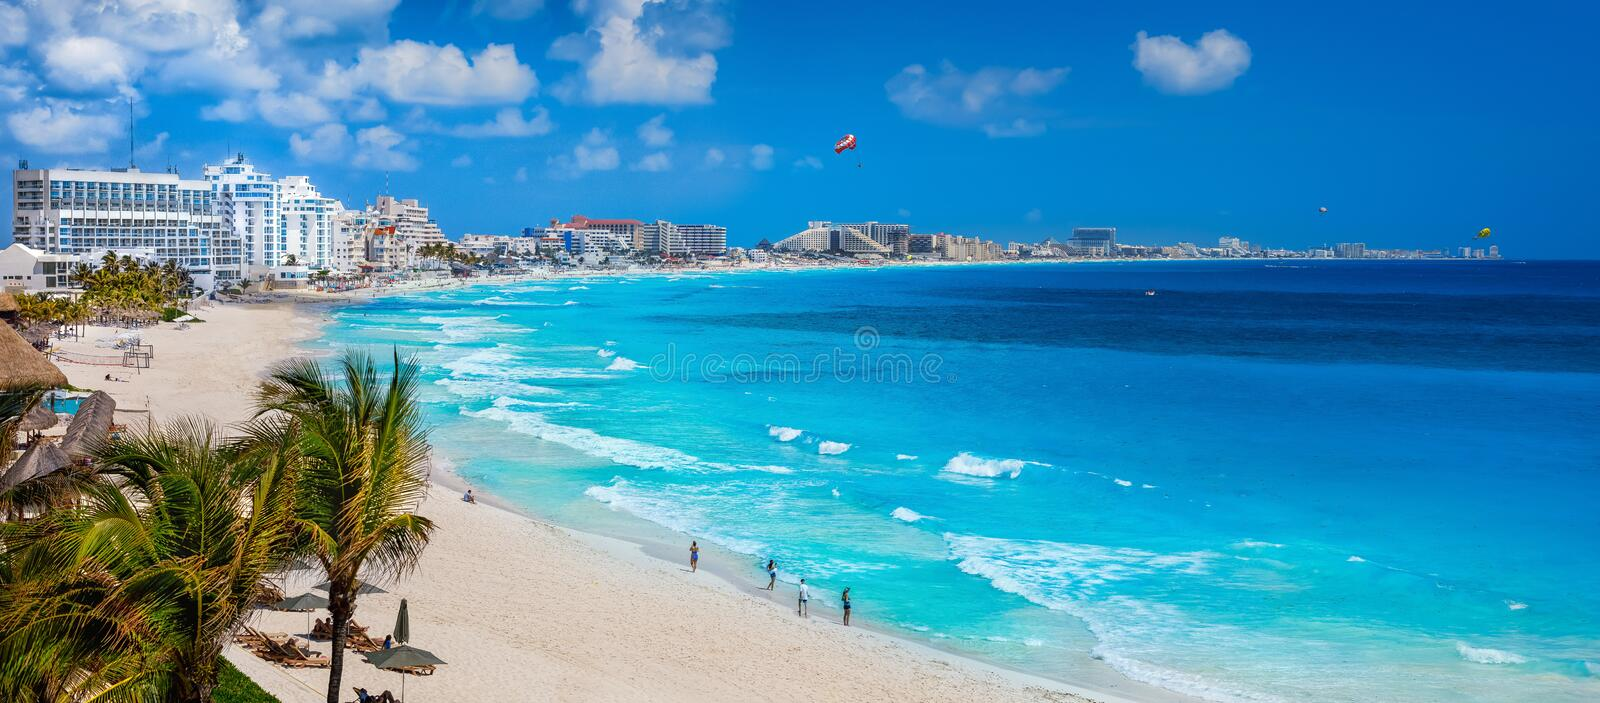 Plage de Cancun au cours de la journée photos stock